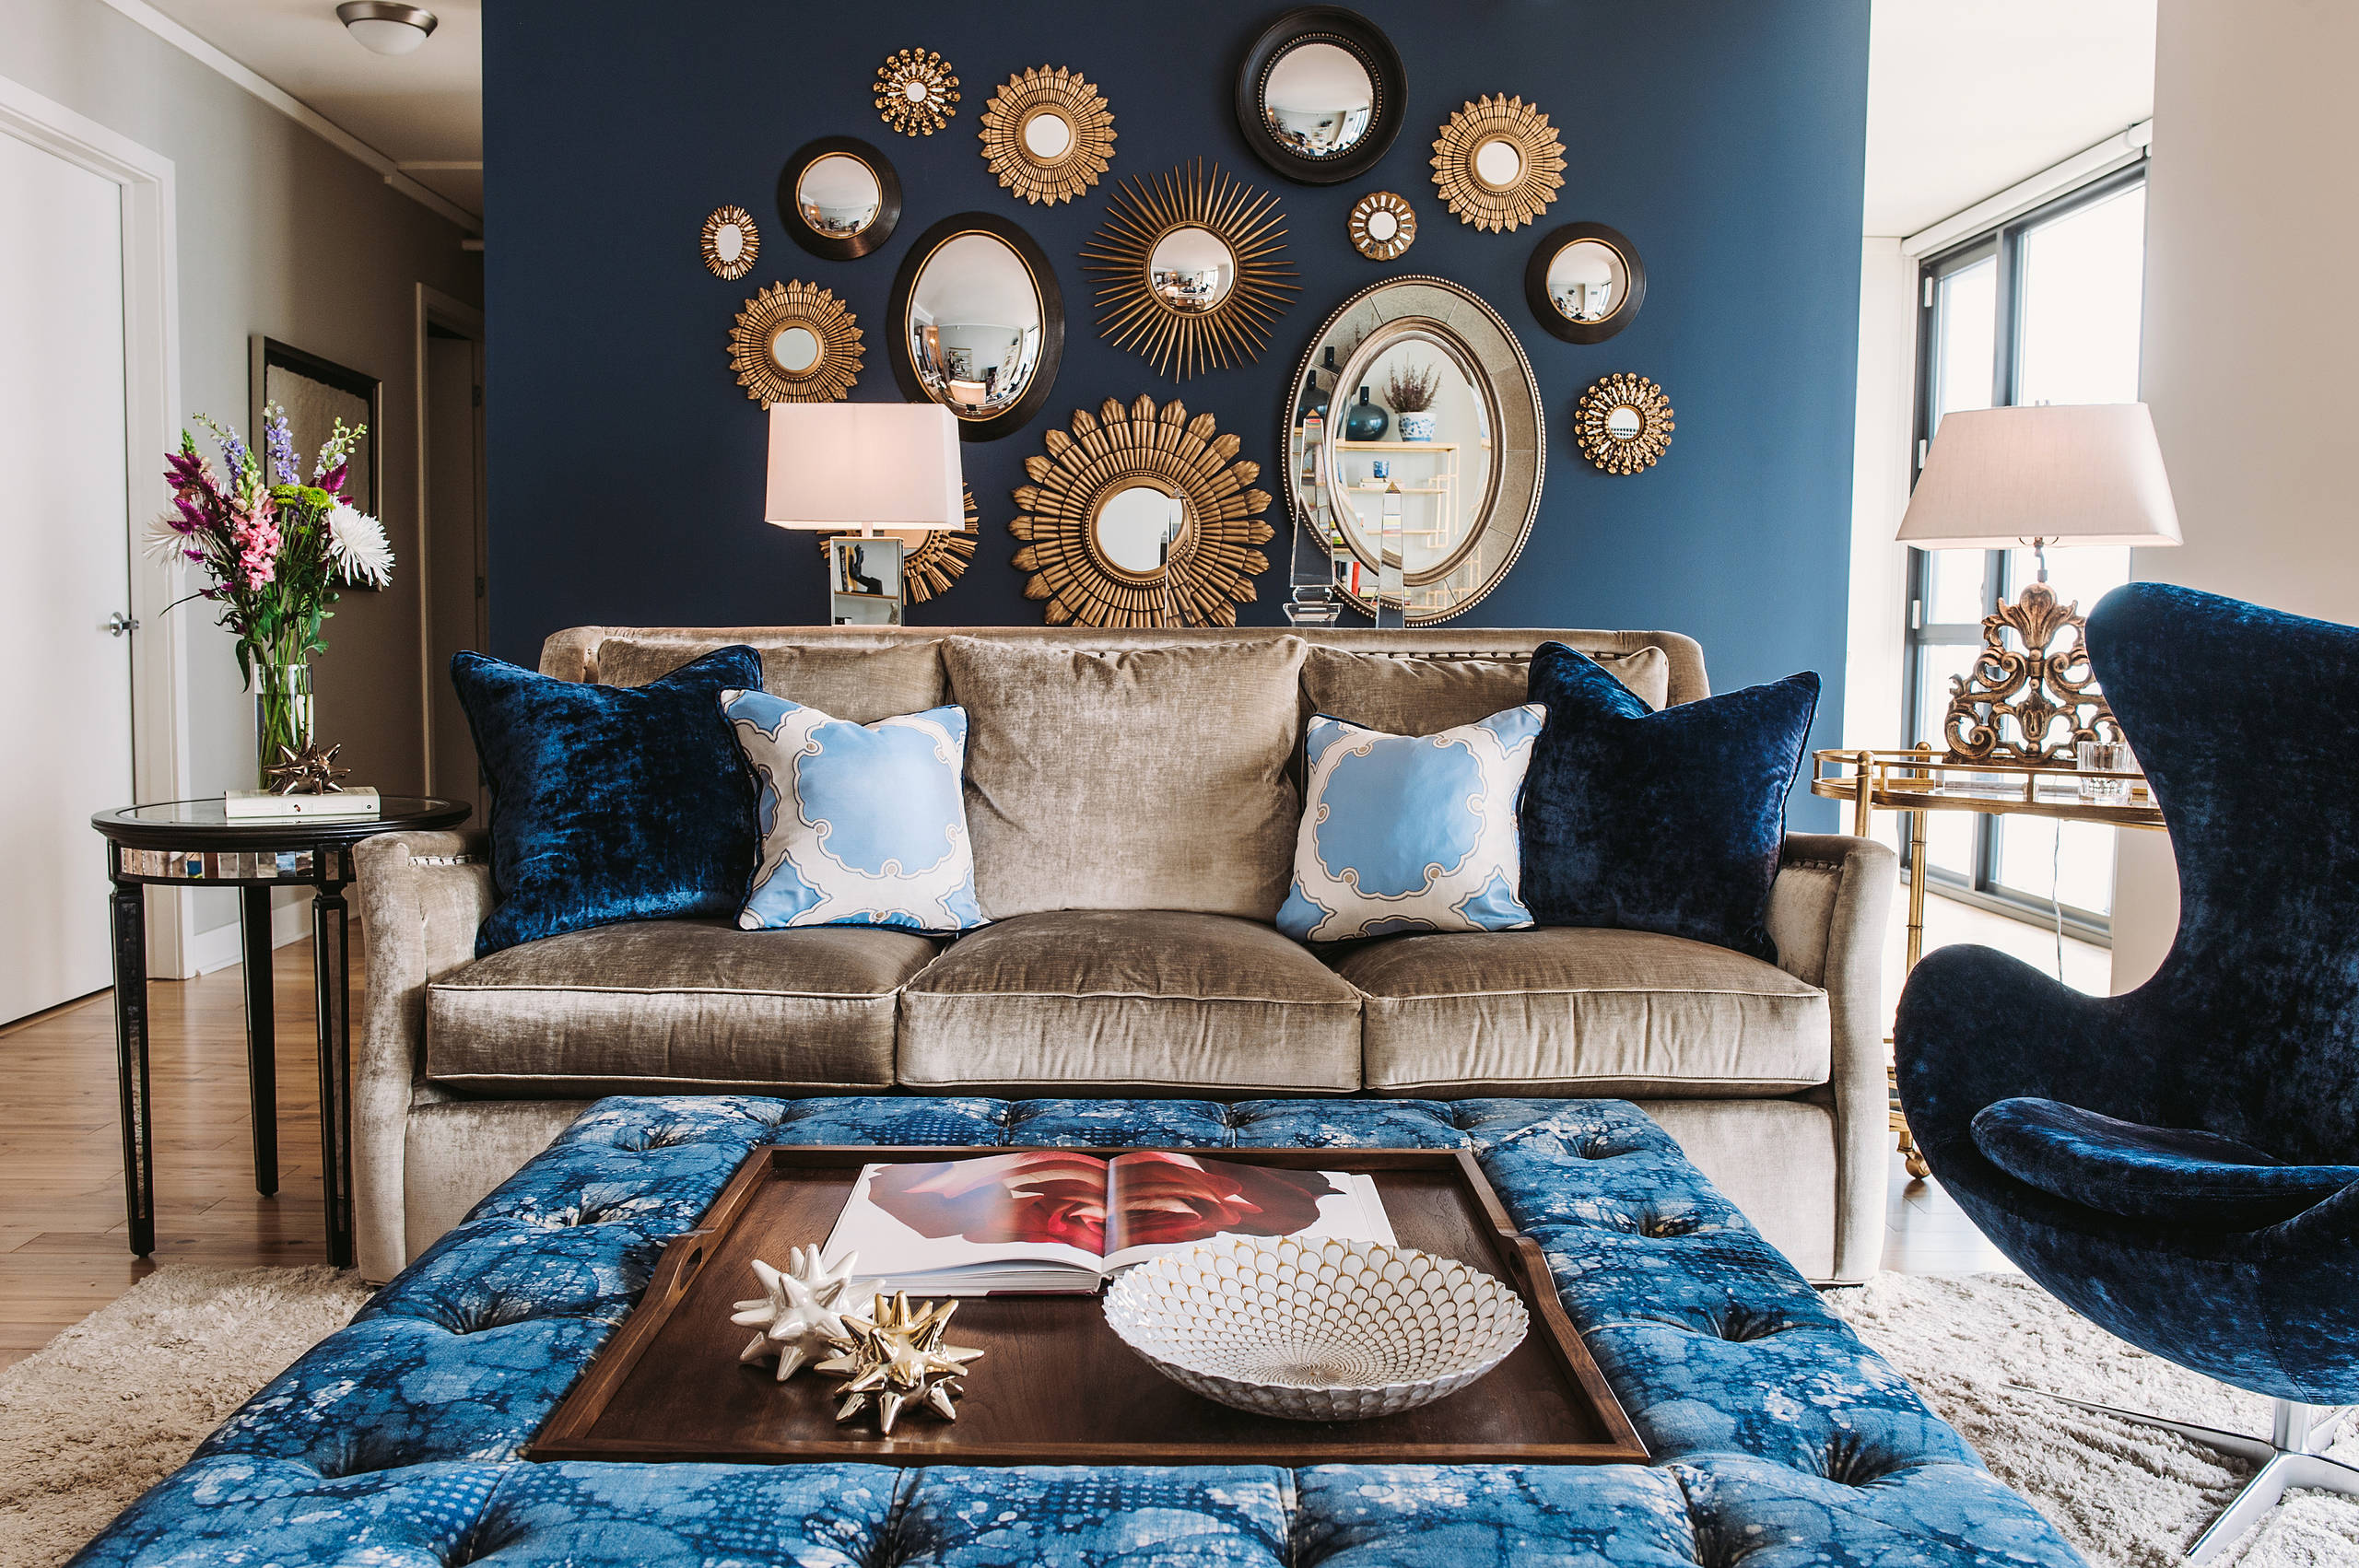 The Best Summer Paint Colors for Your Living Room summer paint colors for your living room The Best Summer Paint Colors for Your Living Room The Best Summer Paint Colors for Your Living Room